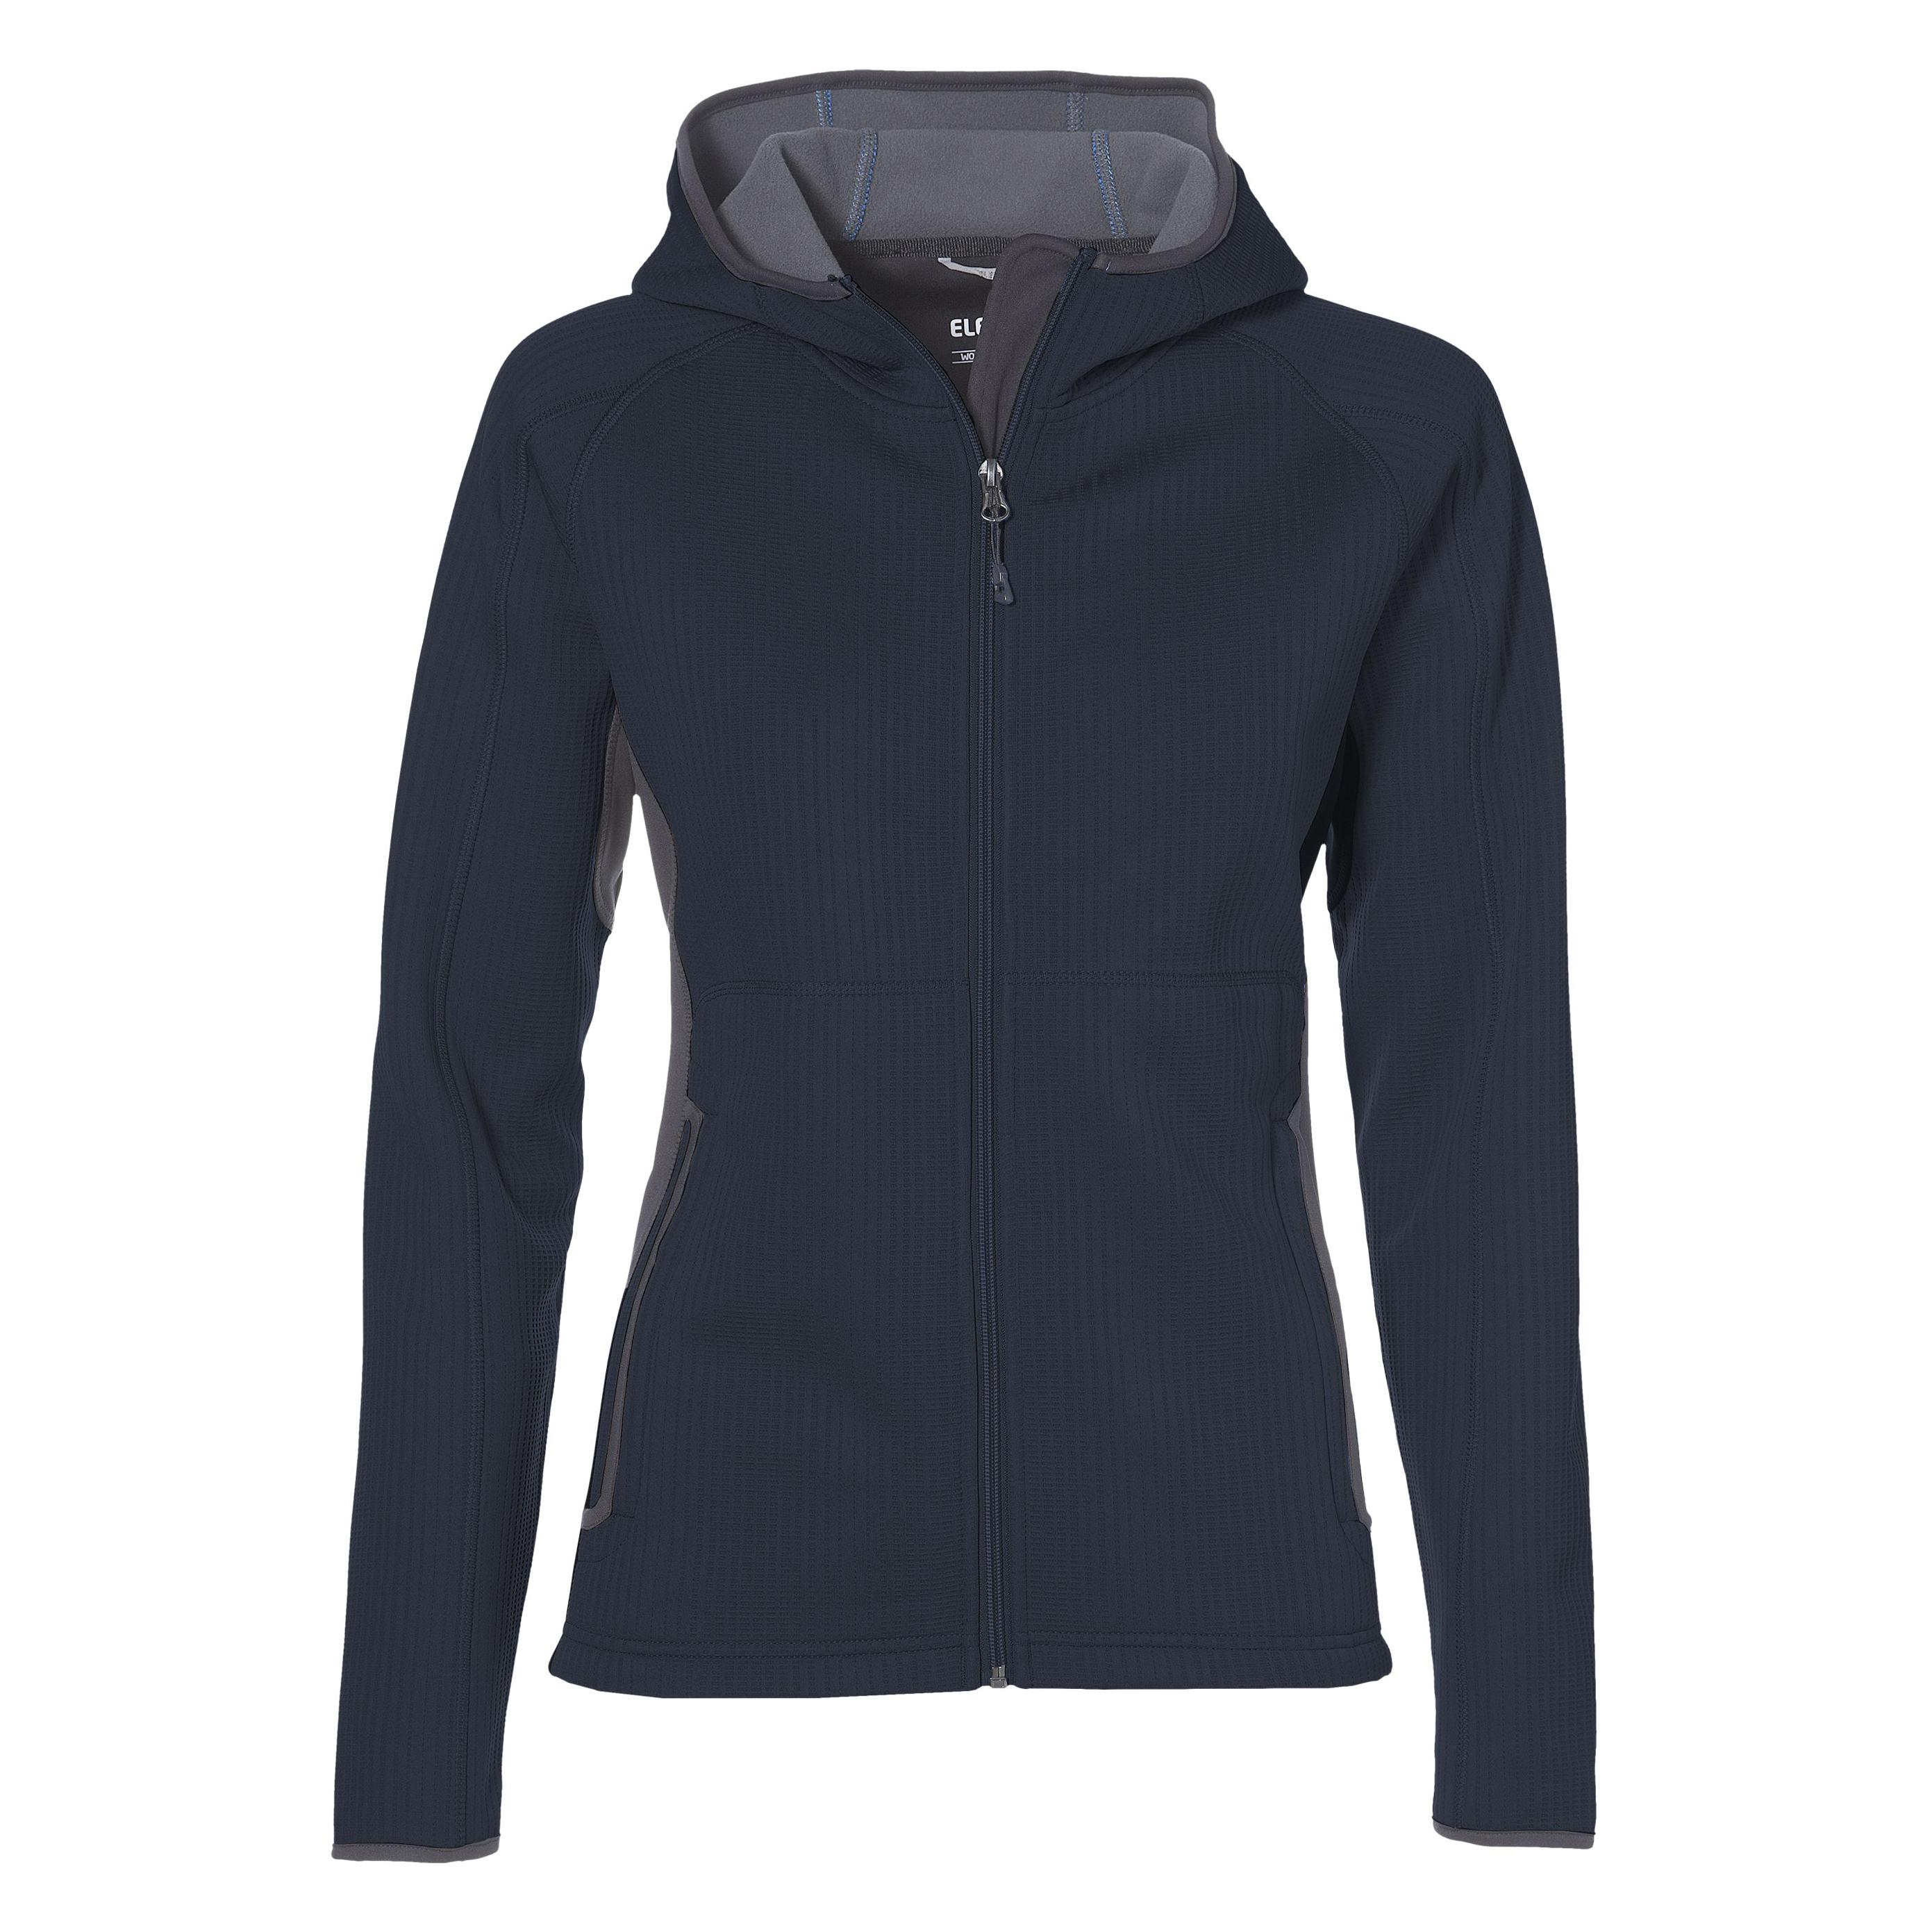 Ladies Ferno Bonded Knit Jacket - Navy Only